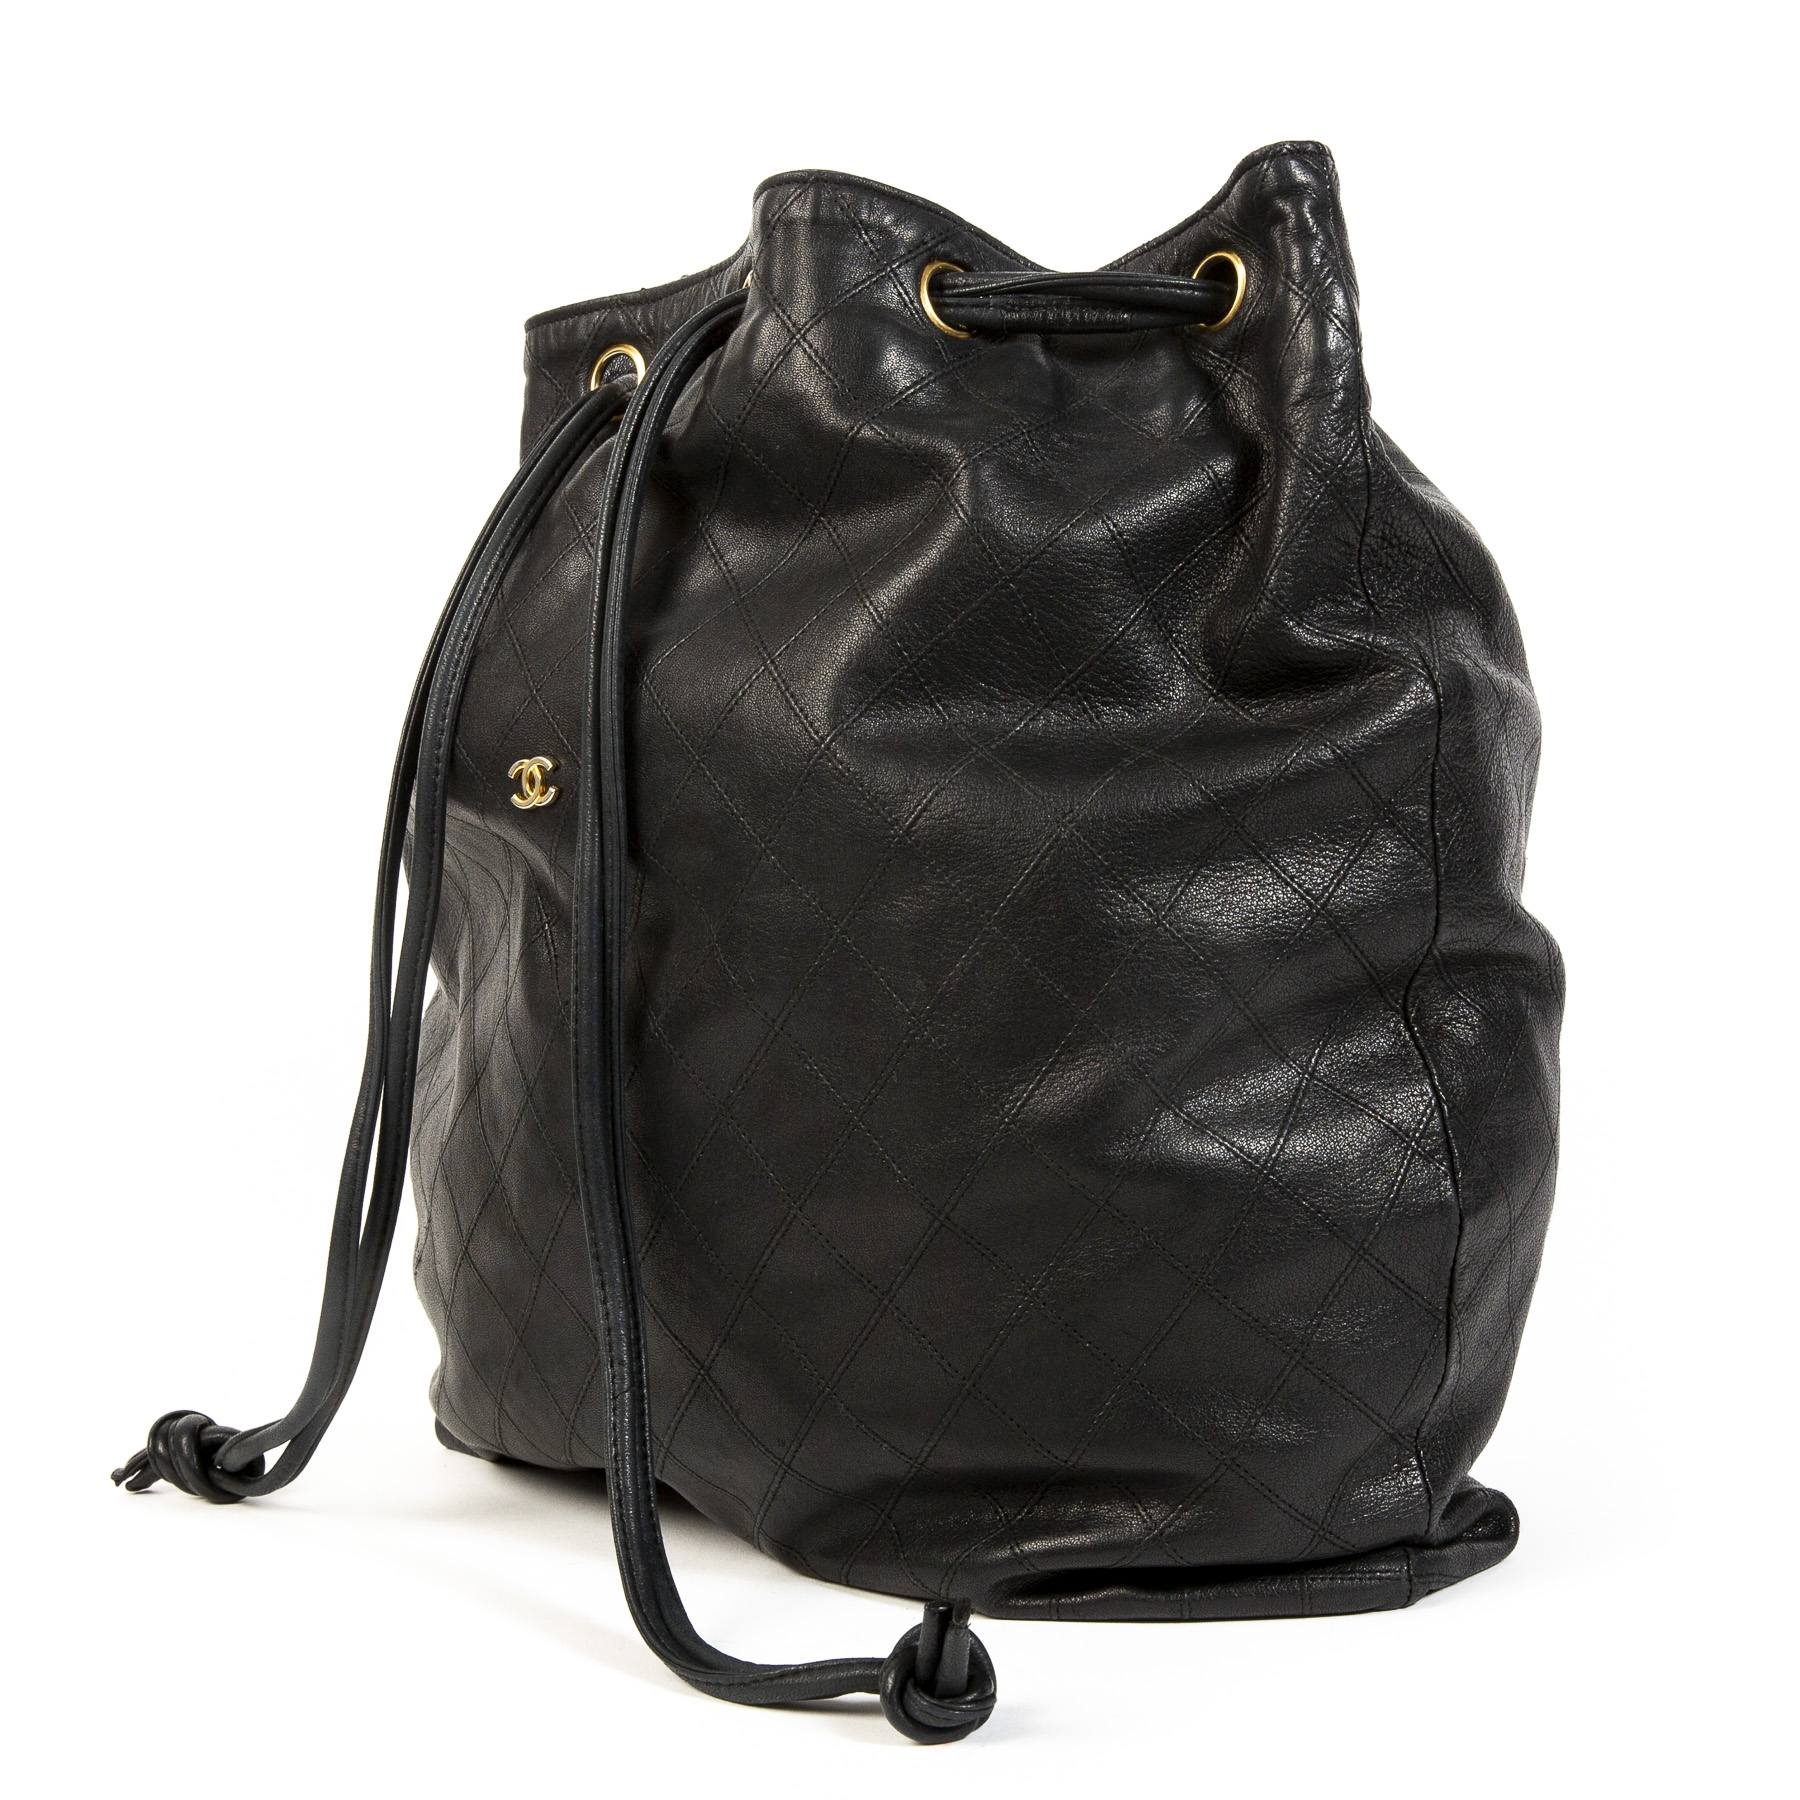 c75af407d978 Chanel Black Vintage Lambskin Bucket Bag Buy secondhand Chanel handbags at  Labellov.